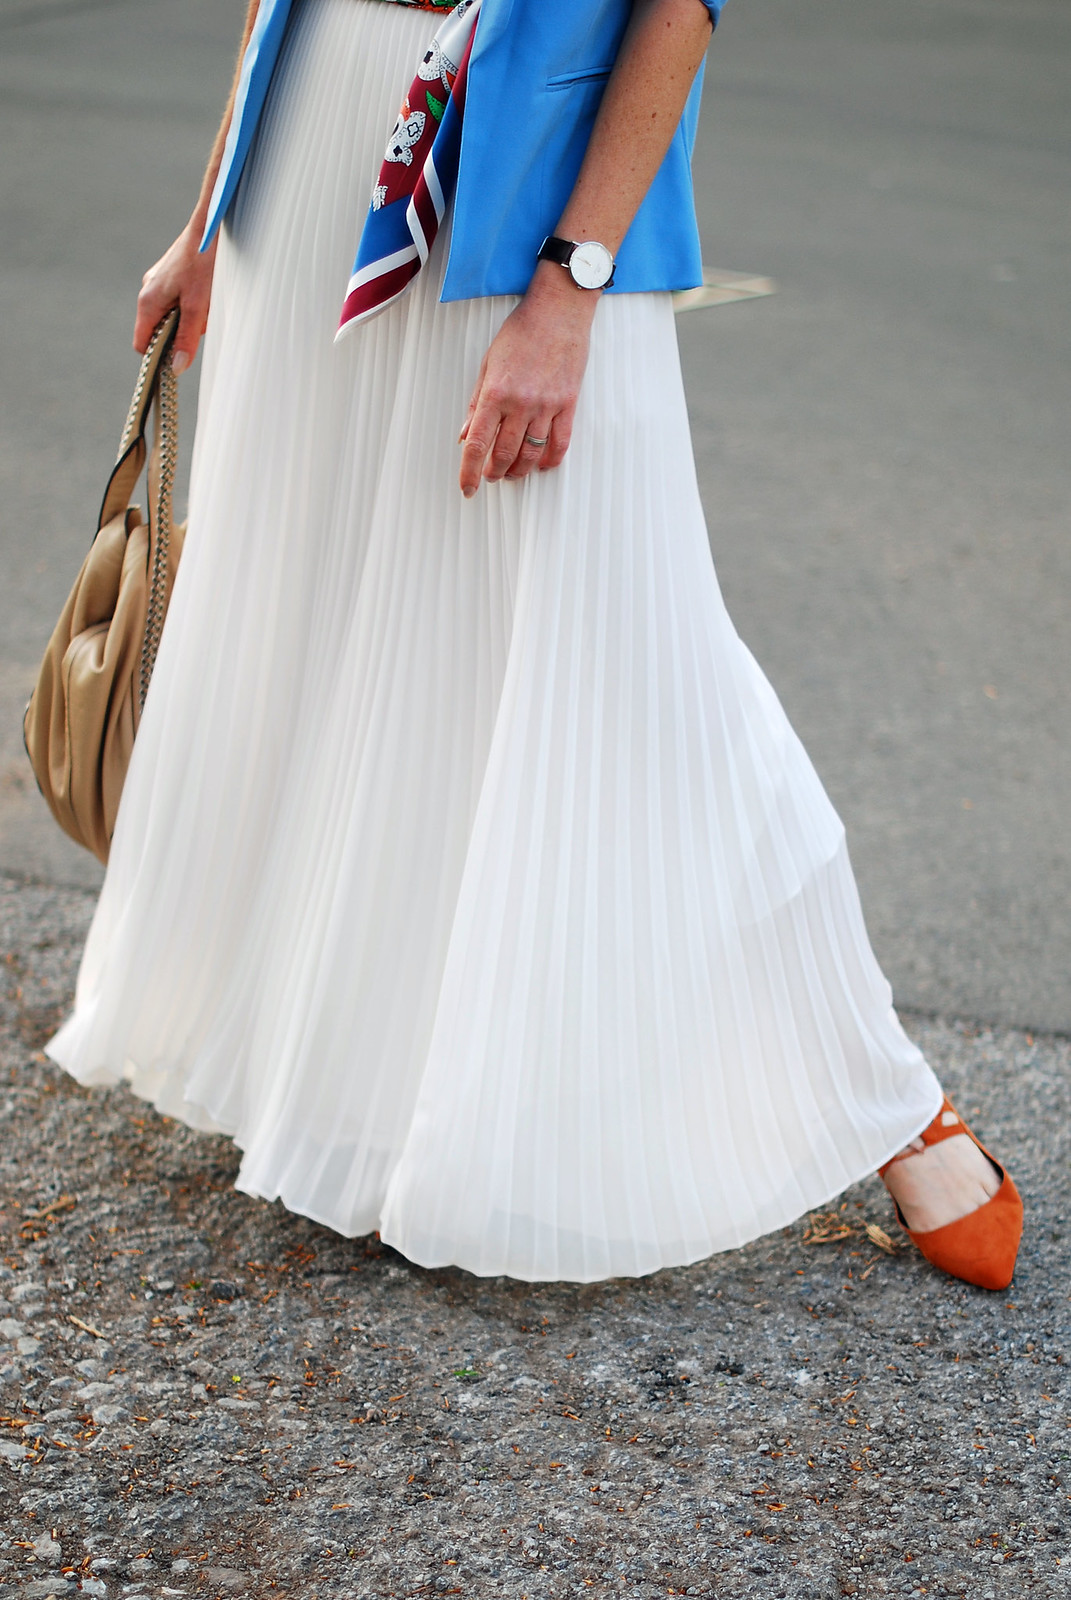 Buy White Long skirt and top picture trends